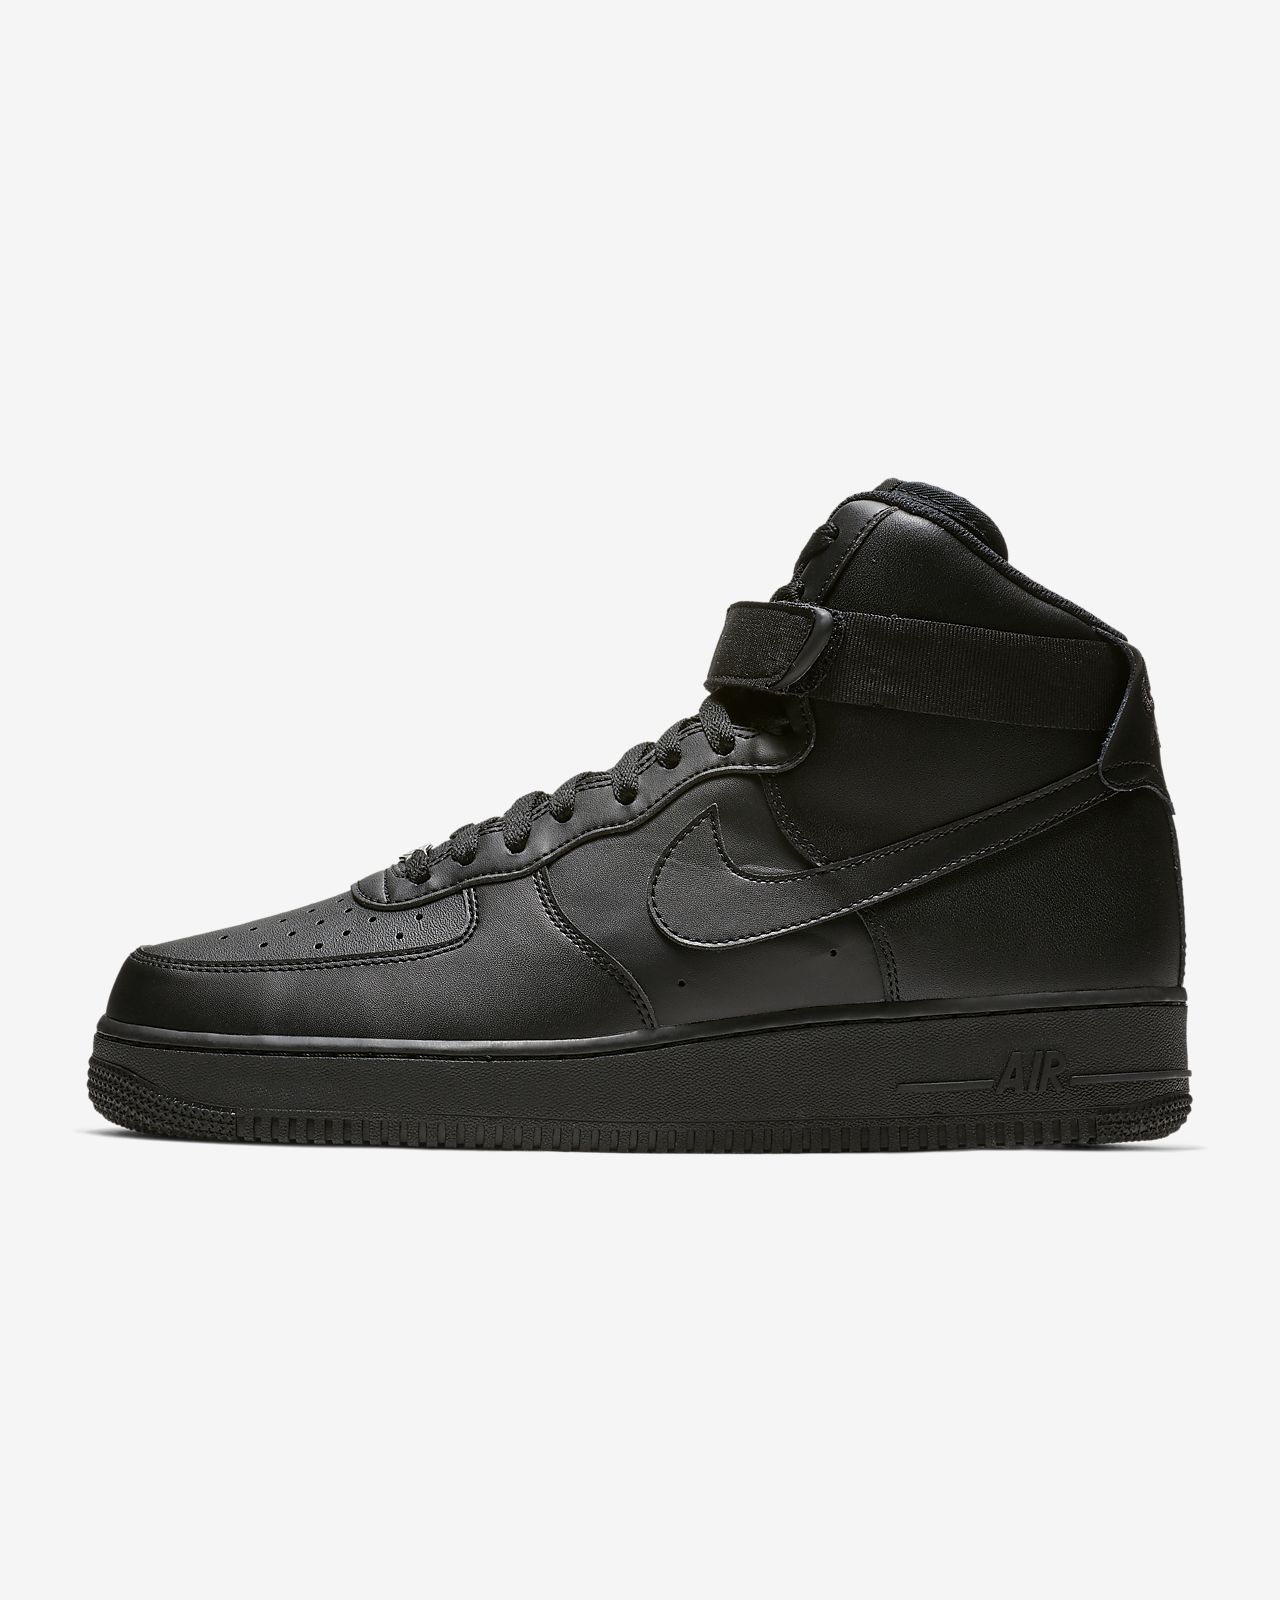 promo code cad71 2ed29 ... Nike Air Force 1 High 07 Men s Shoe